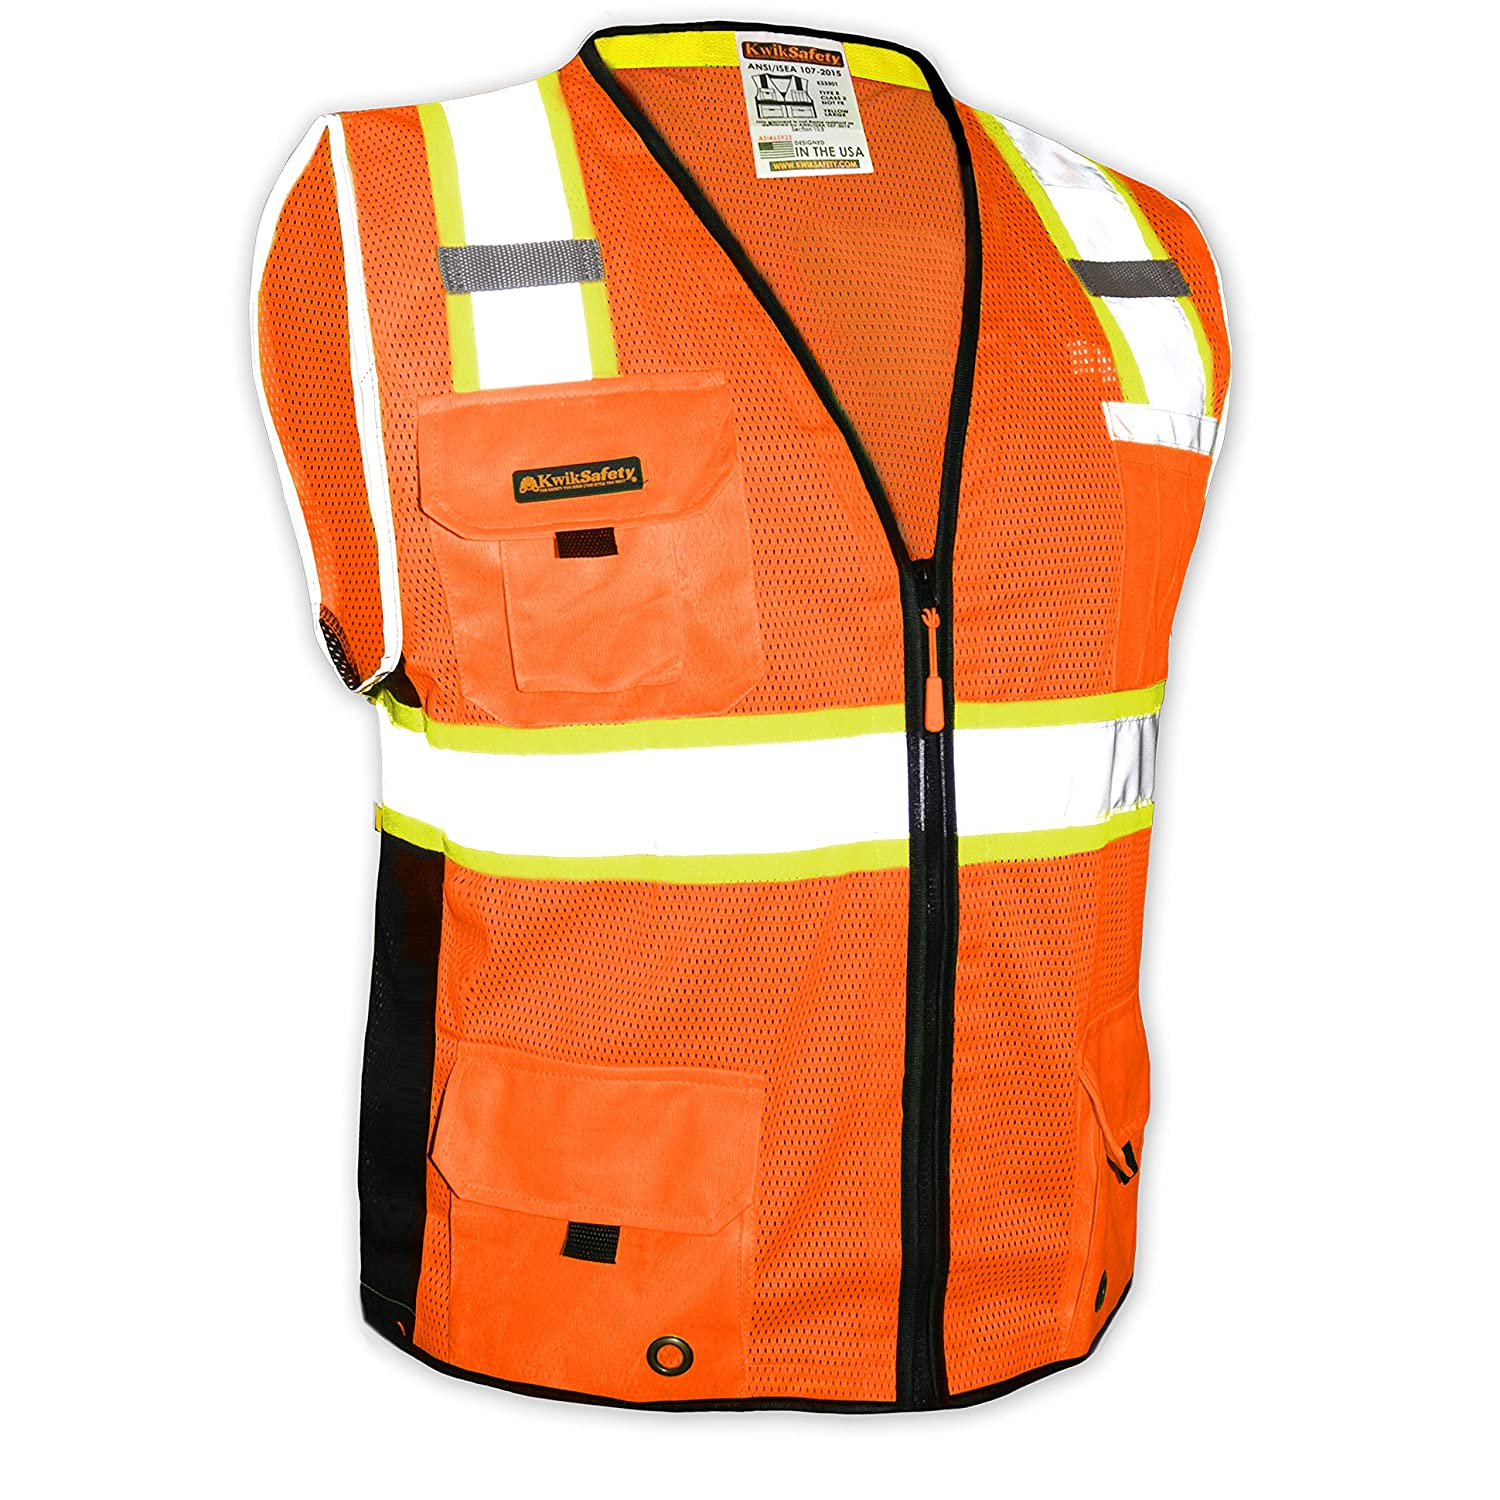 KwikSafety (Charlotte, NC) Big Kahuna Class 2 ANSI Safety Vest OSHA High Visibility Reflective Stripes Heavy Duty Mesh Pockets and Zipper Hi-Vis Construction Work Hi-Viz Surveyor Mens Orange XX-LARGE